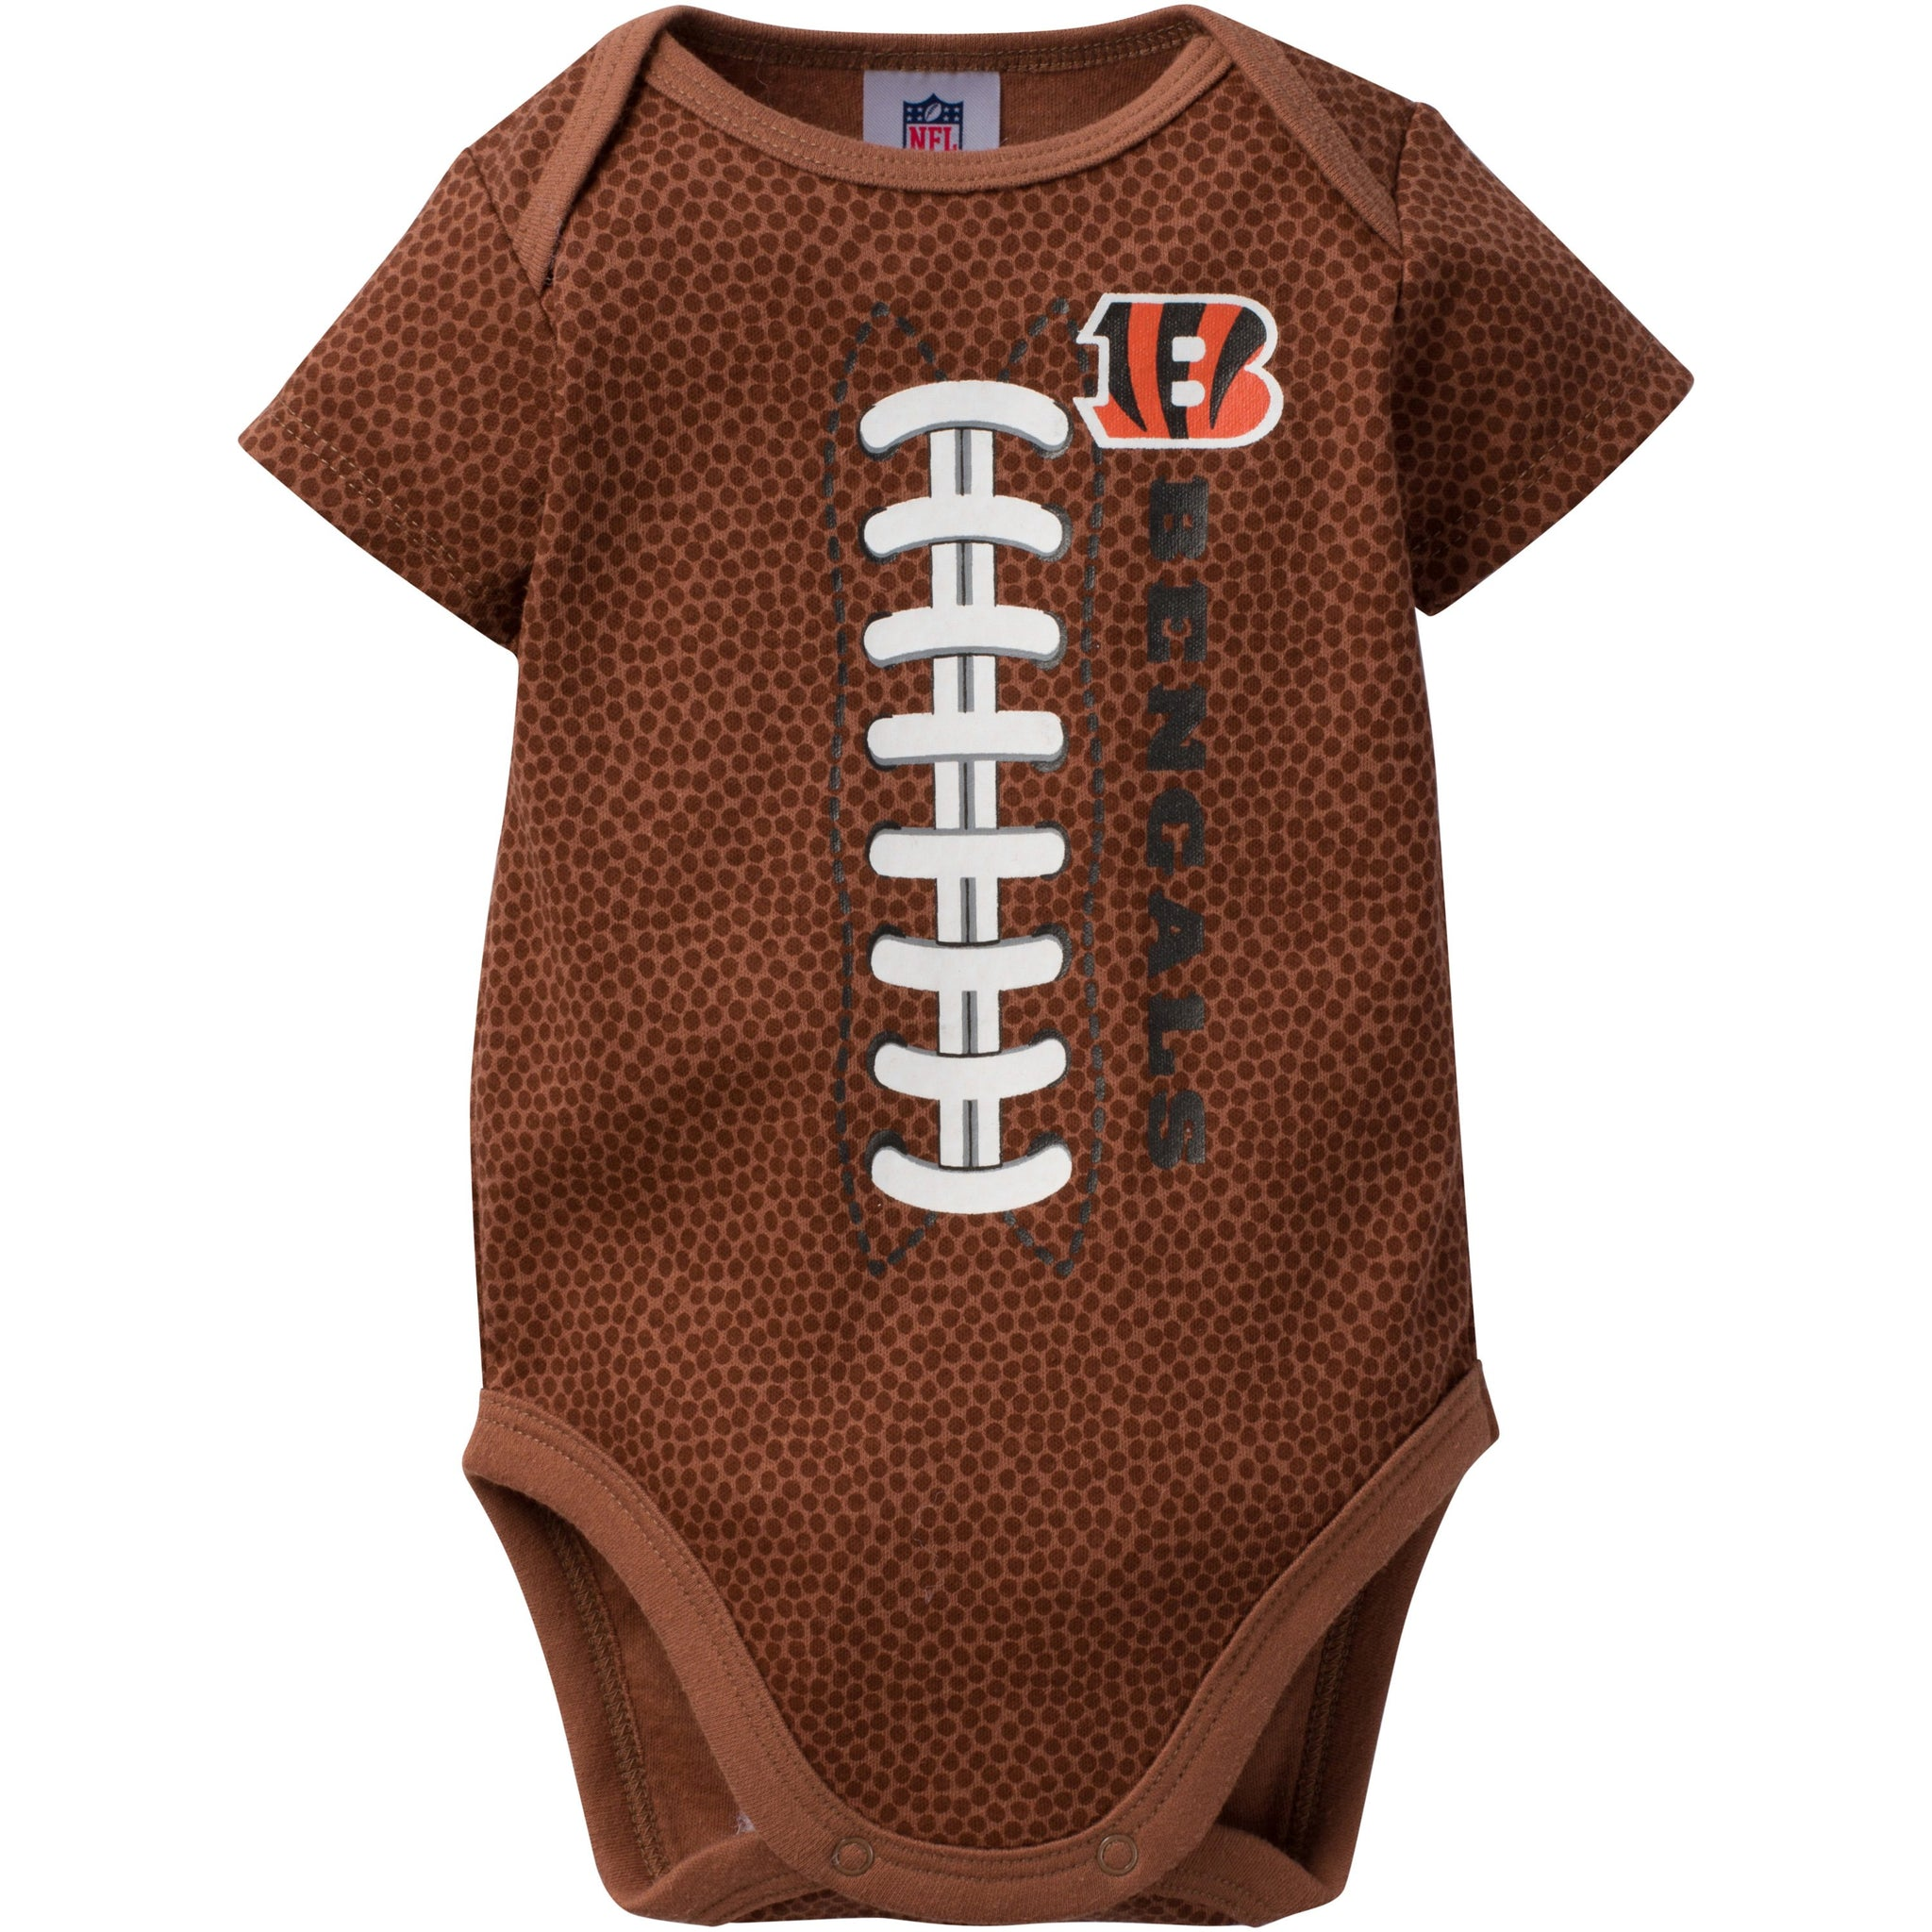 NFL Bengals Infant Short Sleeve Football Bodysuit-Gerber Childrenswear